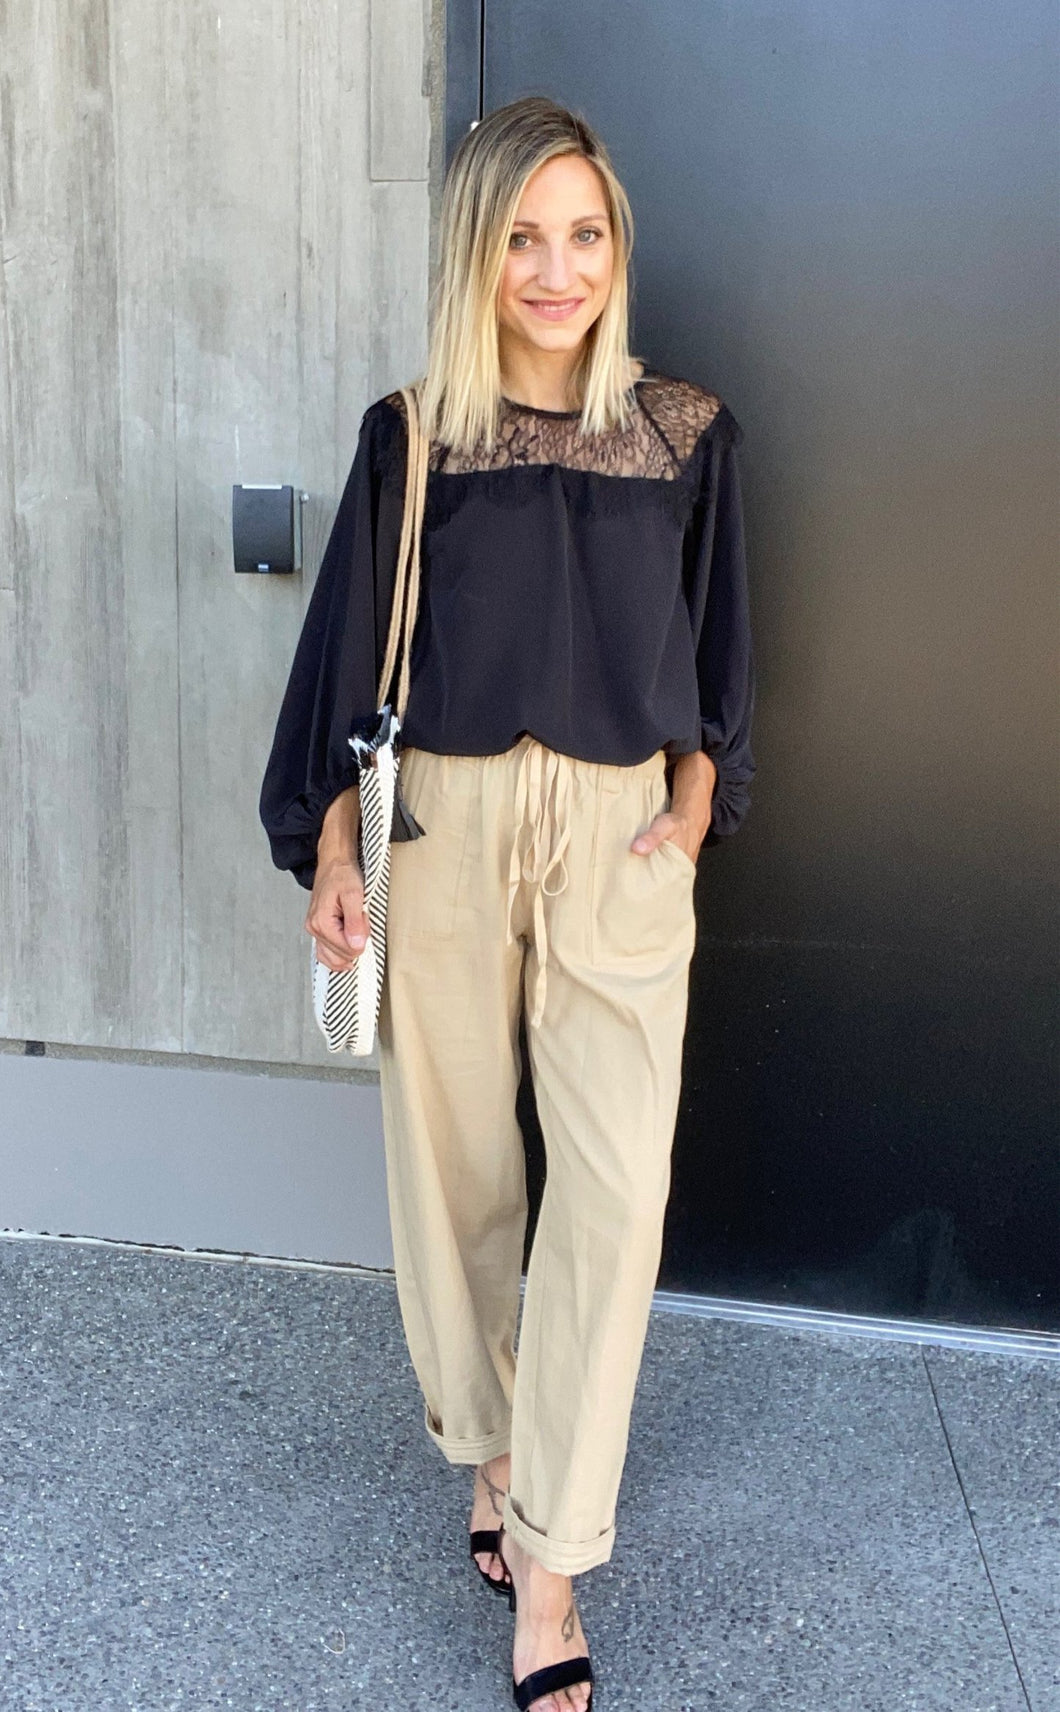 Sammie Cropped Pants In Sand - SAMPLE - Smith & Vena Online Boutique